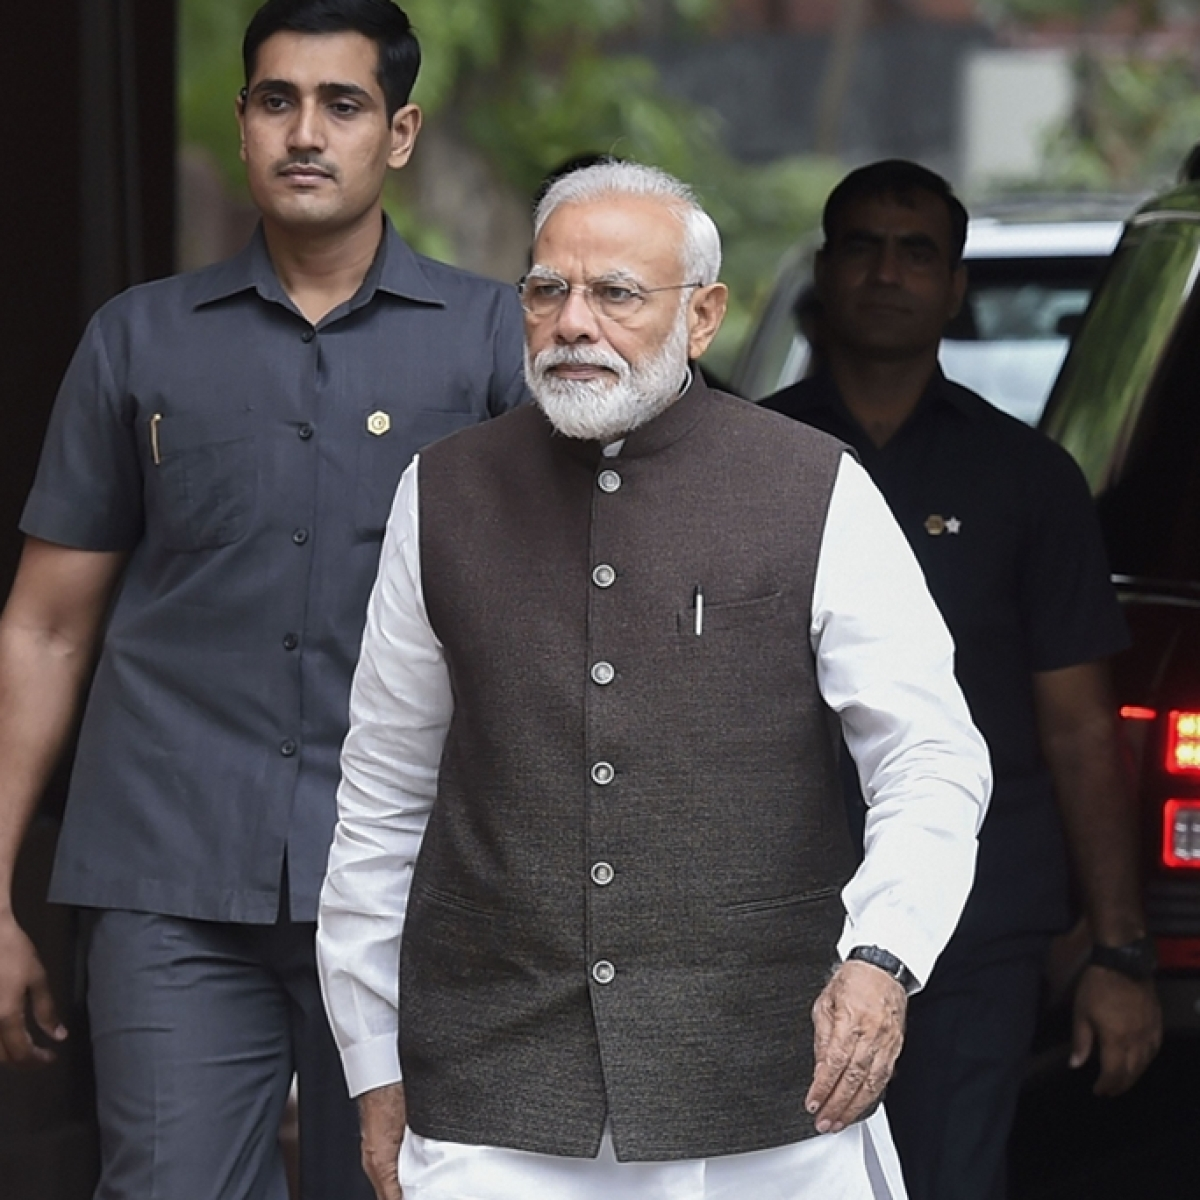 Will PM Modi drop in at Sangh event during his US visit?